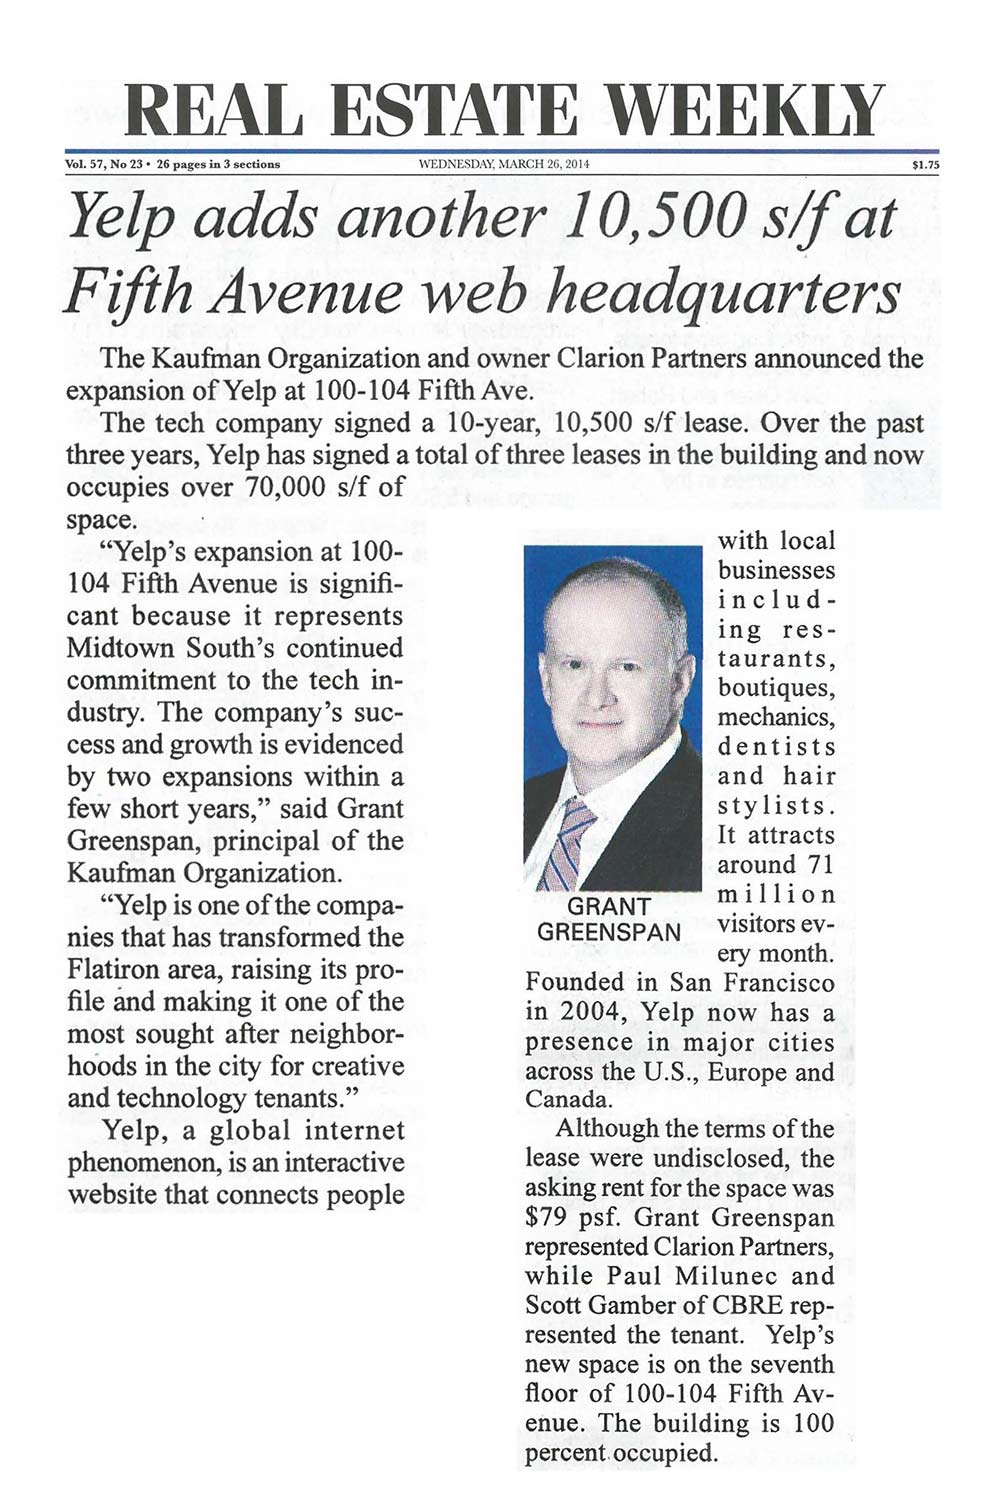 Real-estate-Weekly---Yelp-adds-another-10,500-sf-at-Fifth-Avenue-web-headquarters,-3.26.2014